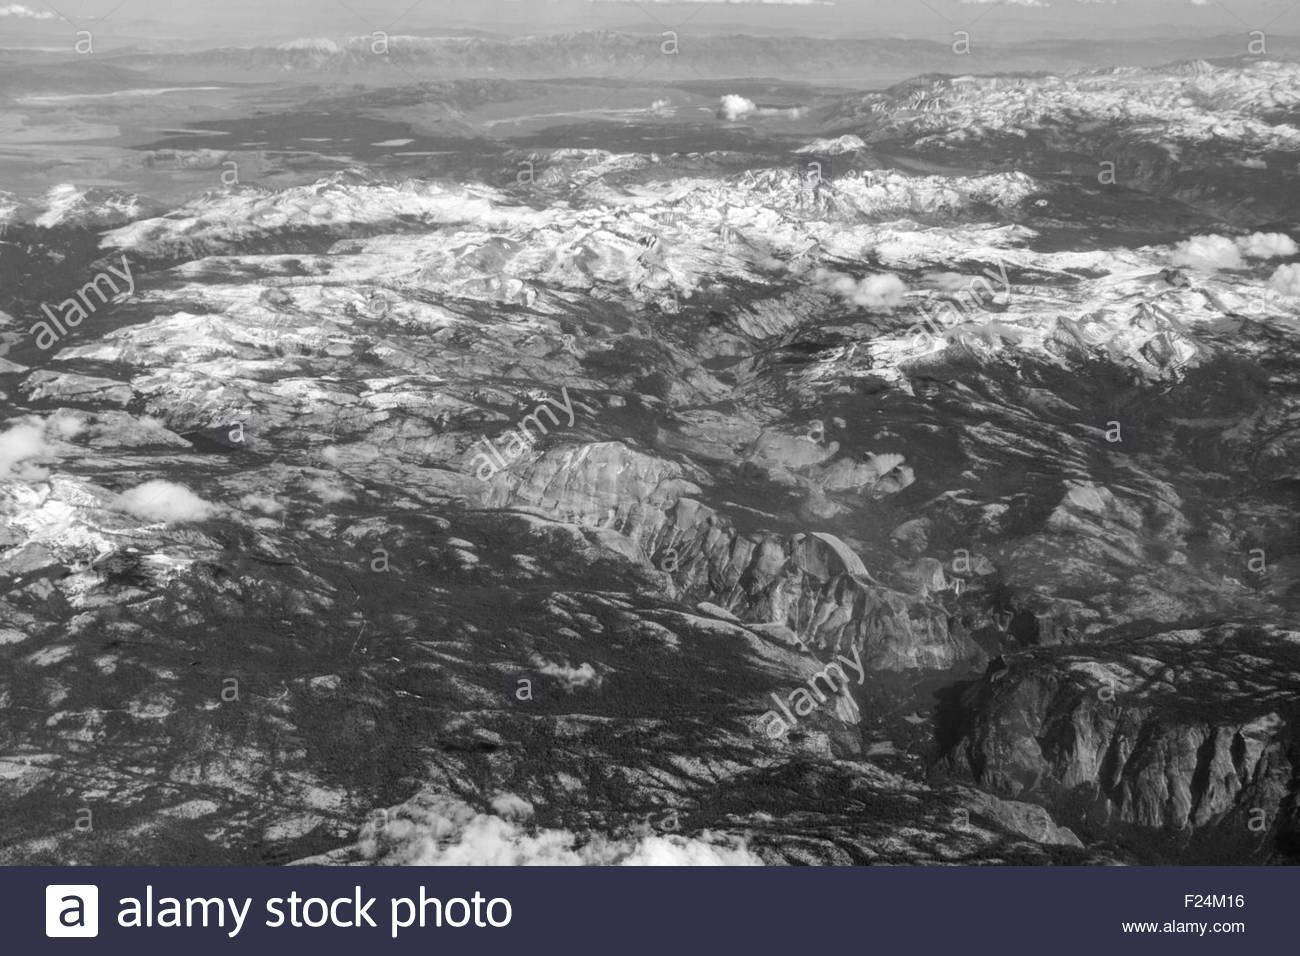 Aerial view of Yosemite Valley and Yosemite National Park in California Stock Photo